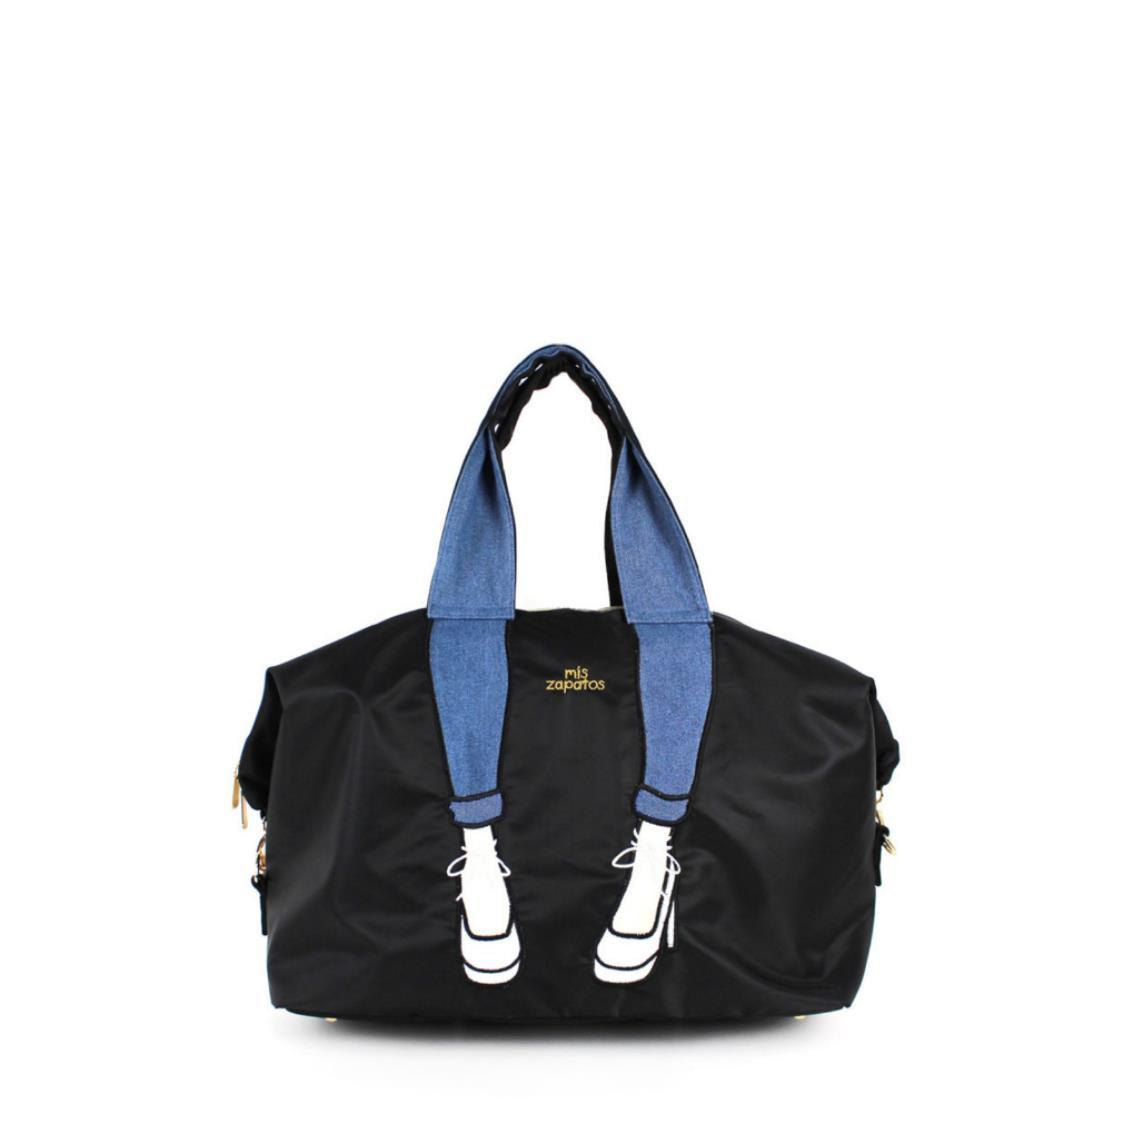 2-Way Use Jeans with High Heels Travel Bag Black